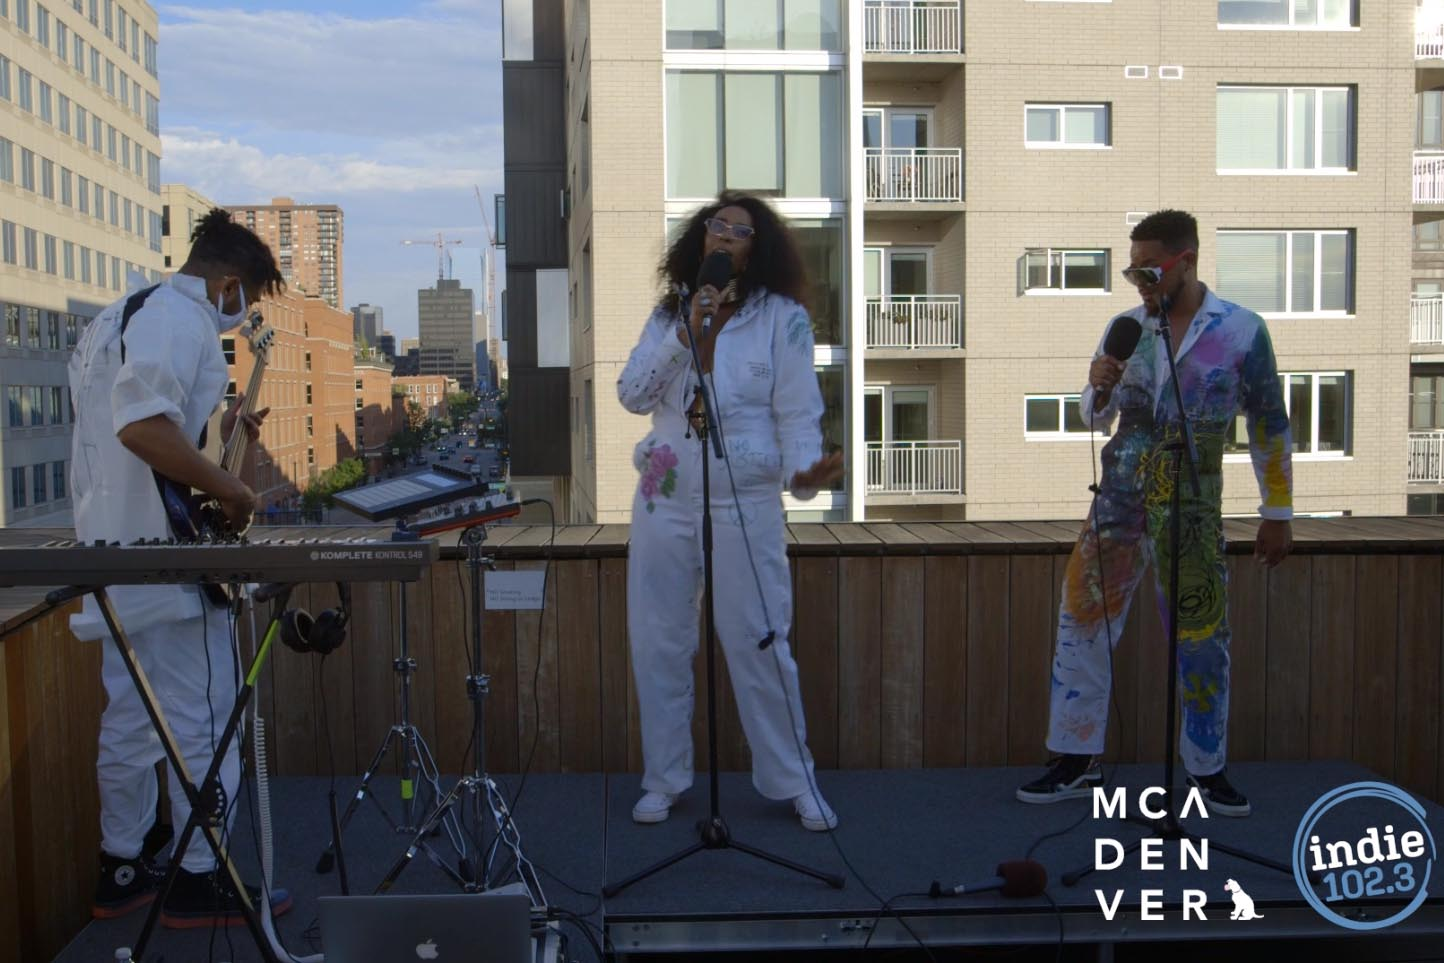 The Grand Alliance performs on the rooftop of MCA Denver for B-Side Music Fridays.